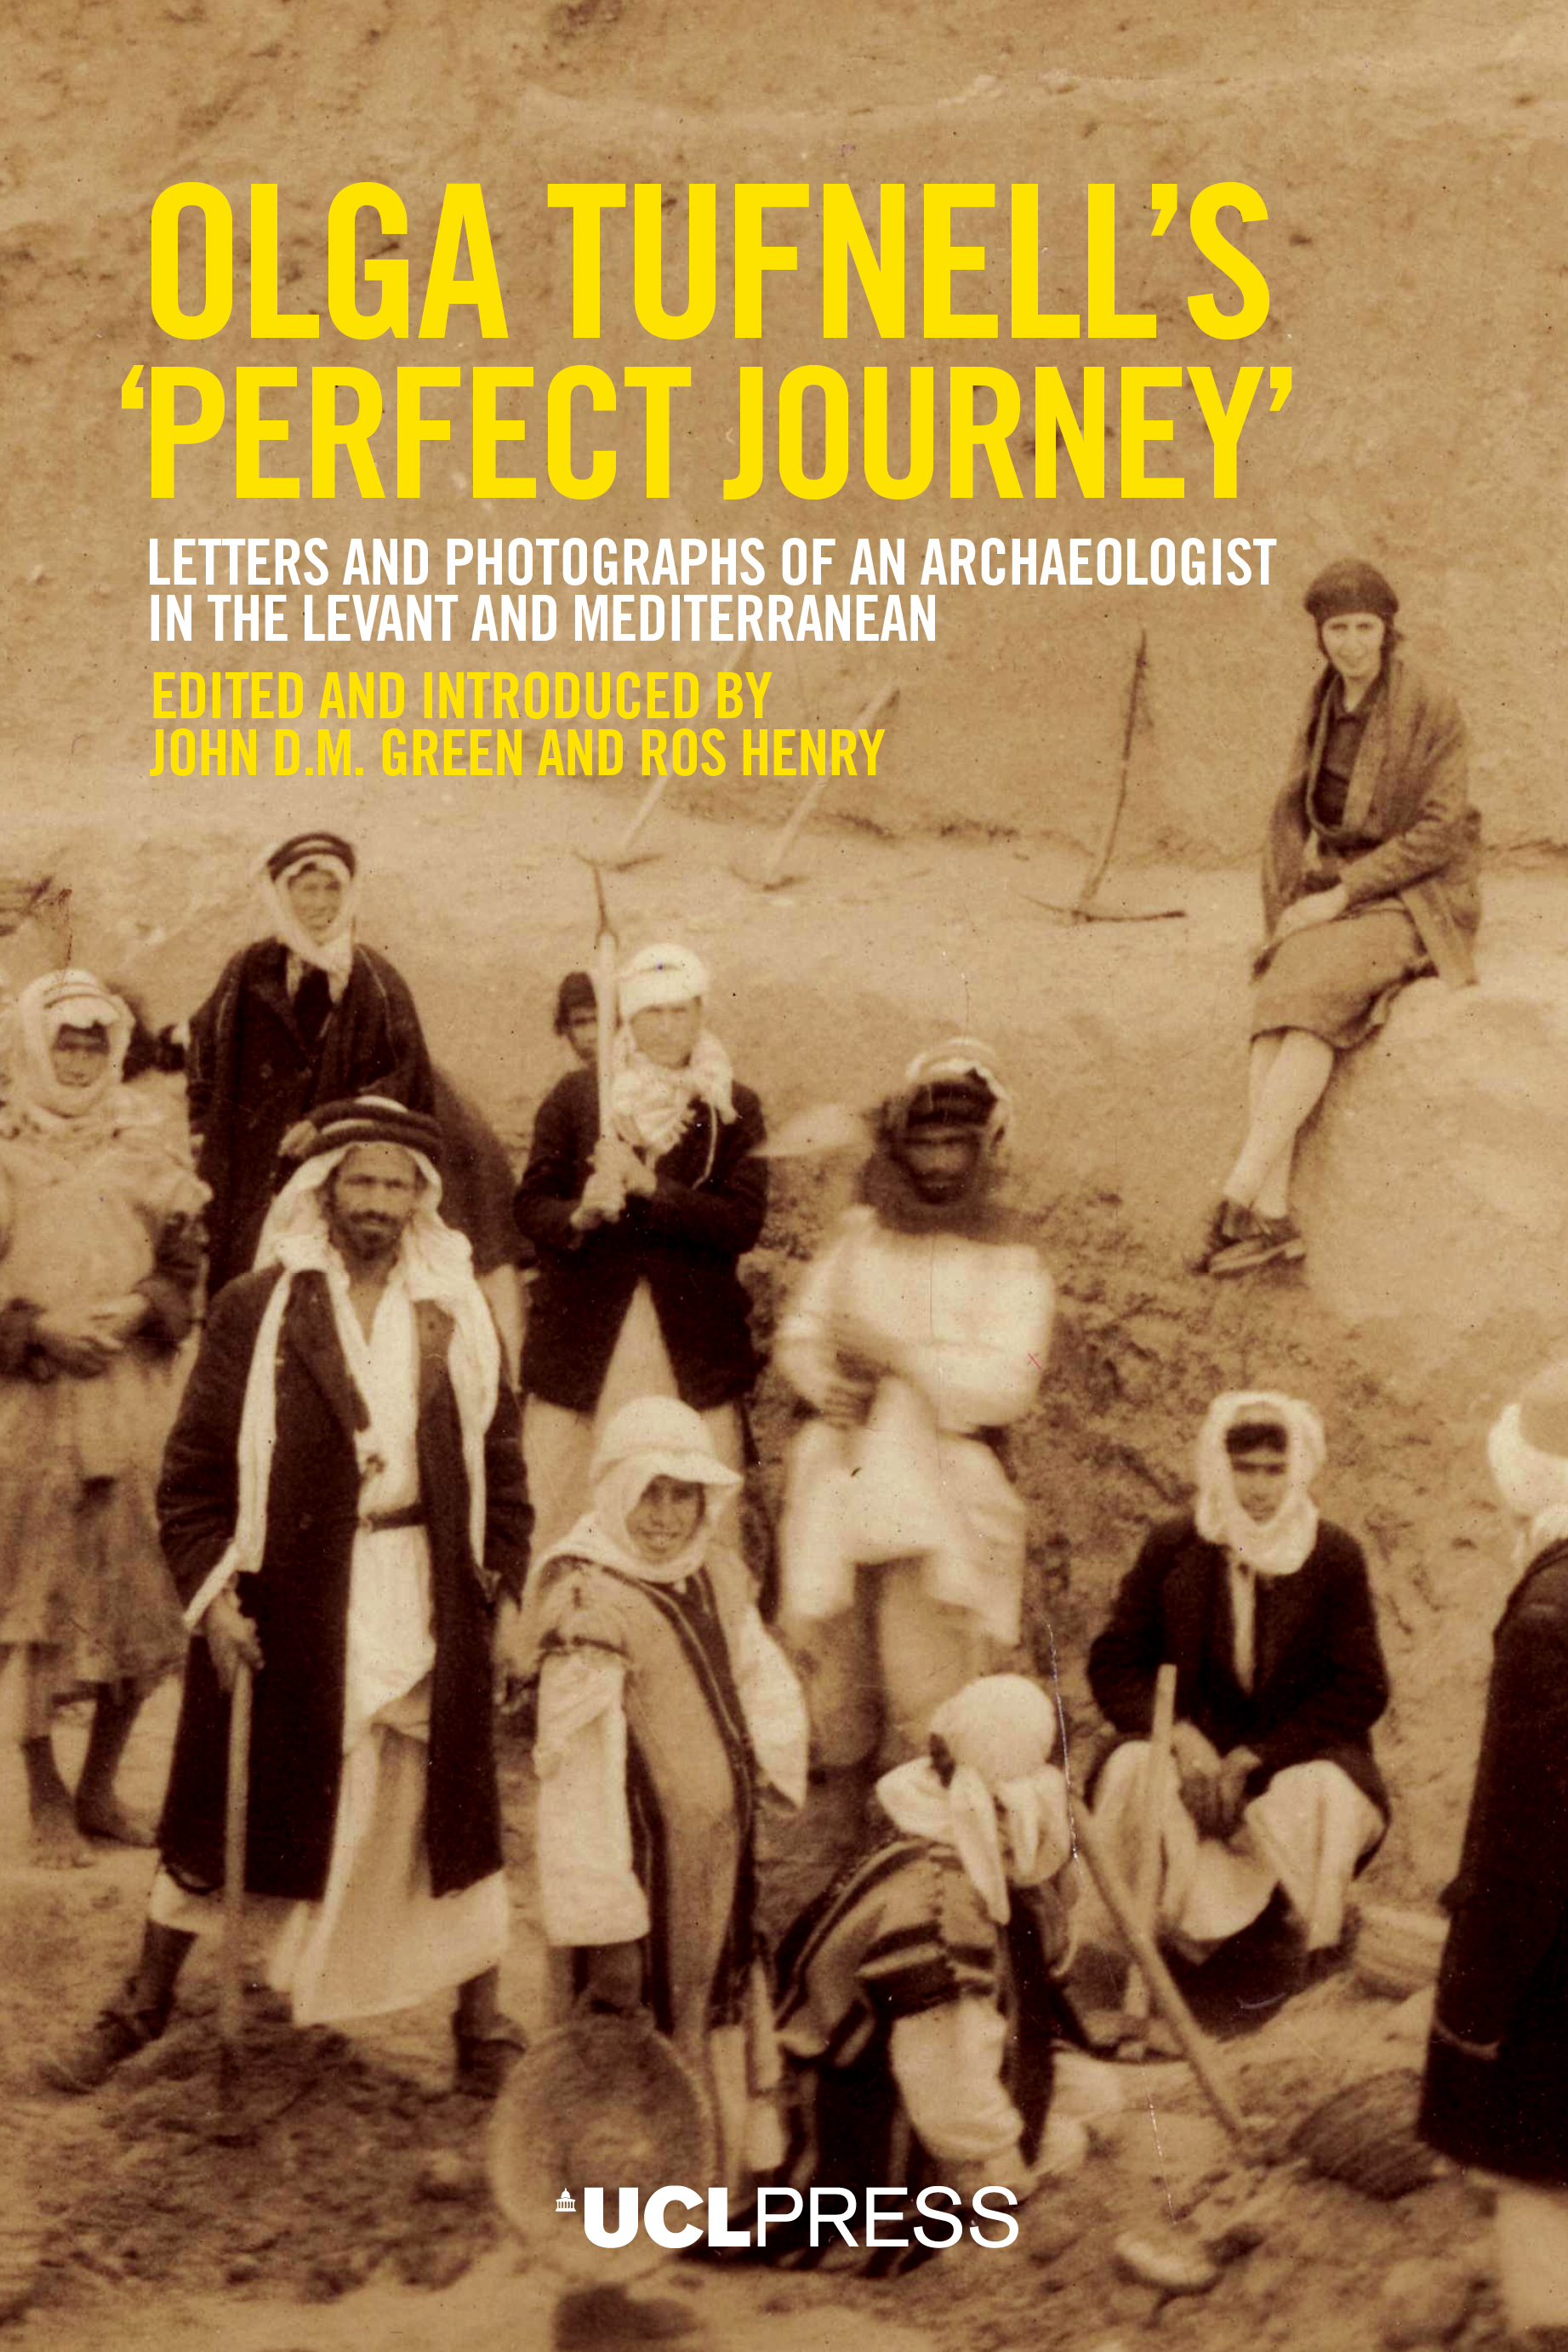 Olga Tufnells 'Perfect Journey'